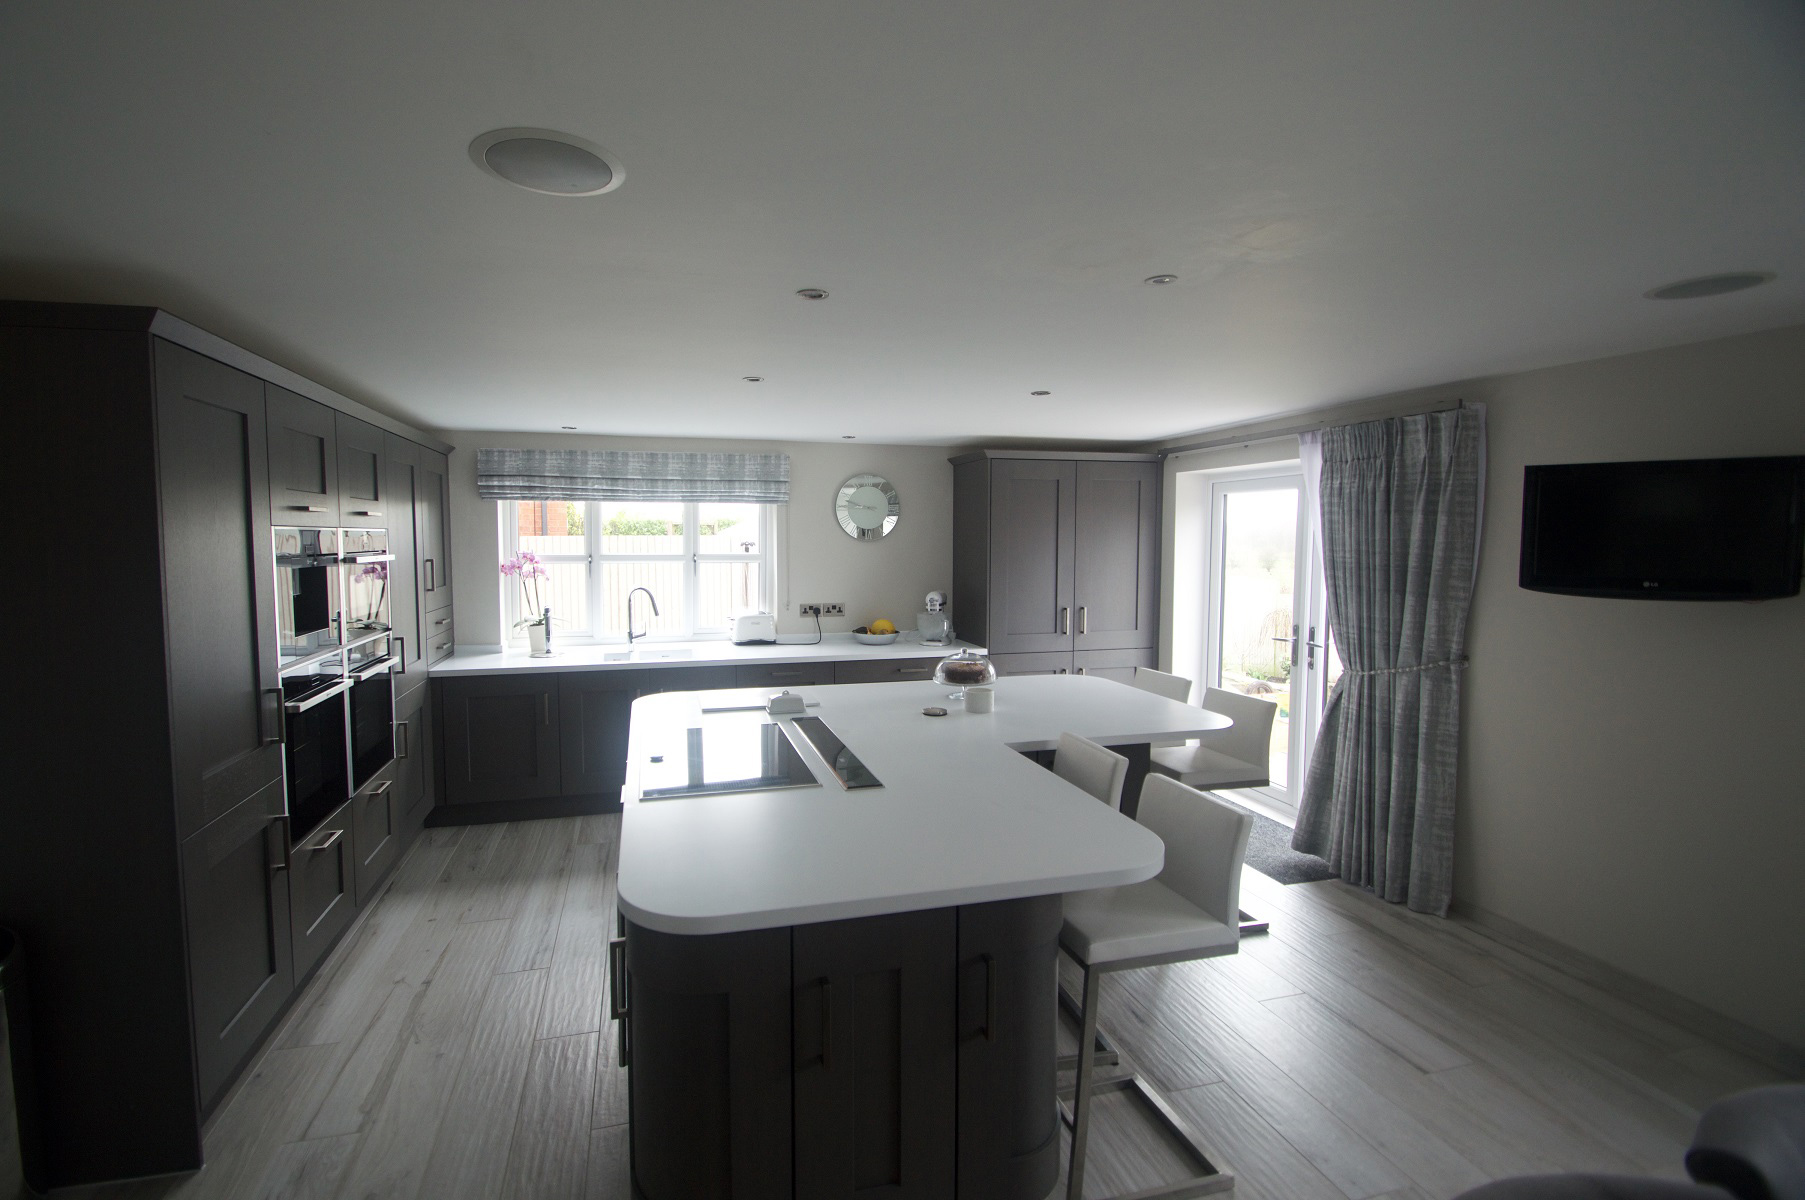 Clonmel Kitchen in Stained Anthracite Featuring Large Island Unit, Designed by Elite Kitchens of Manchester